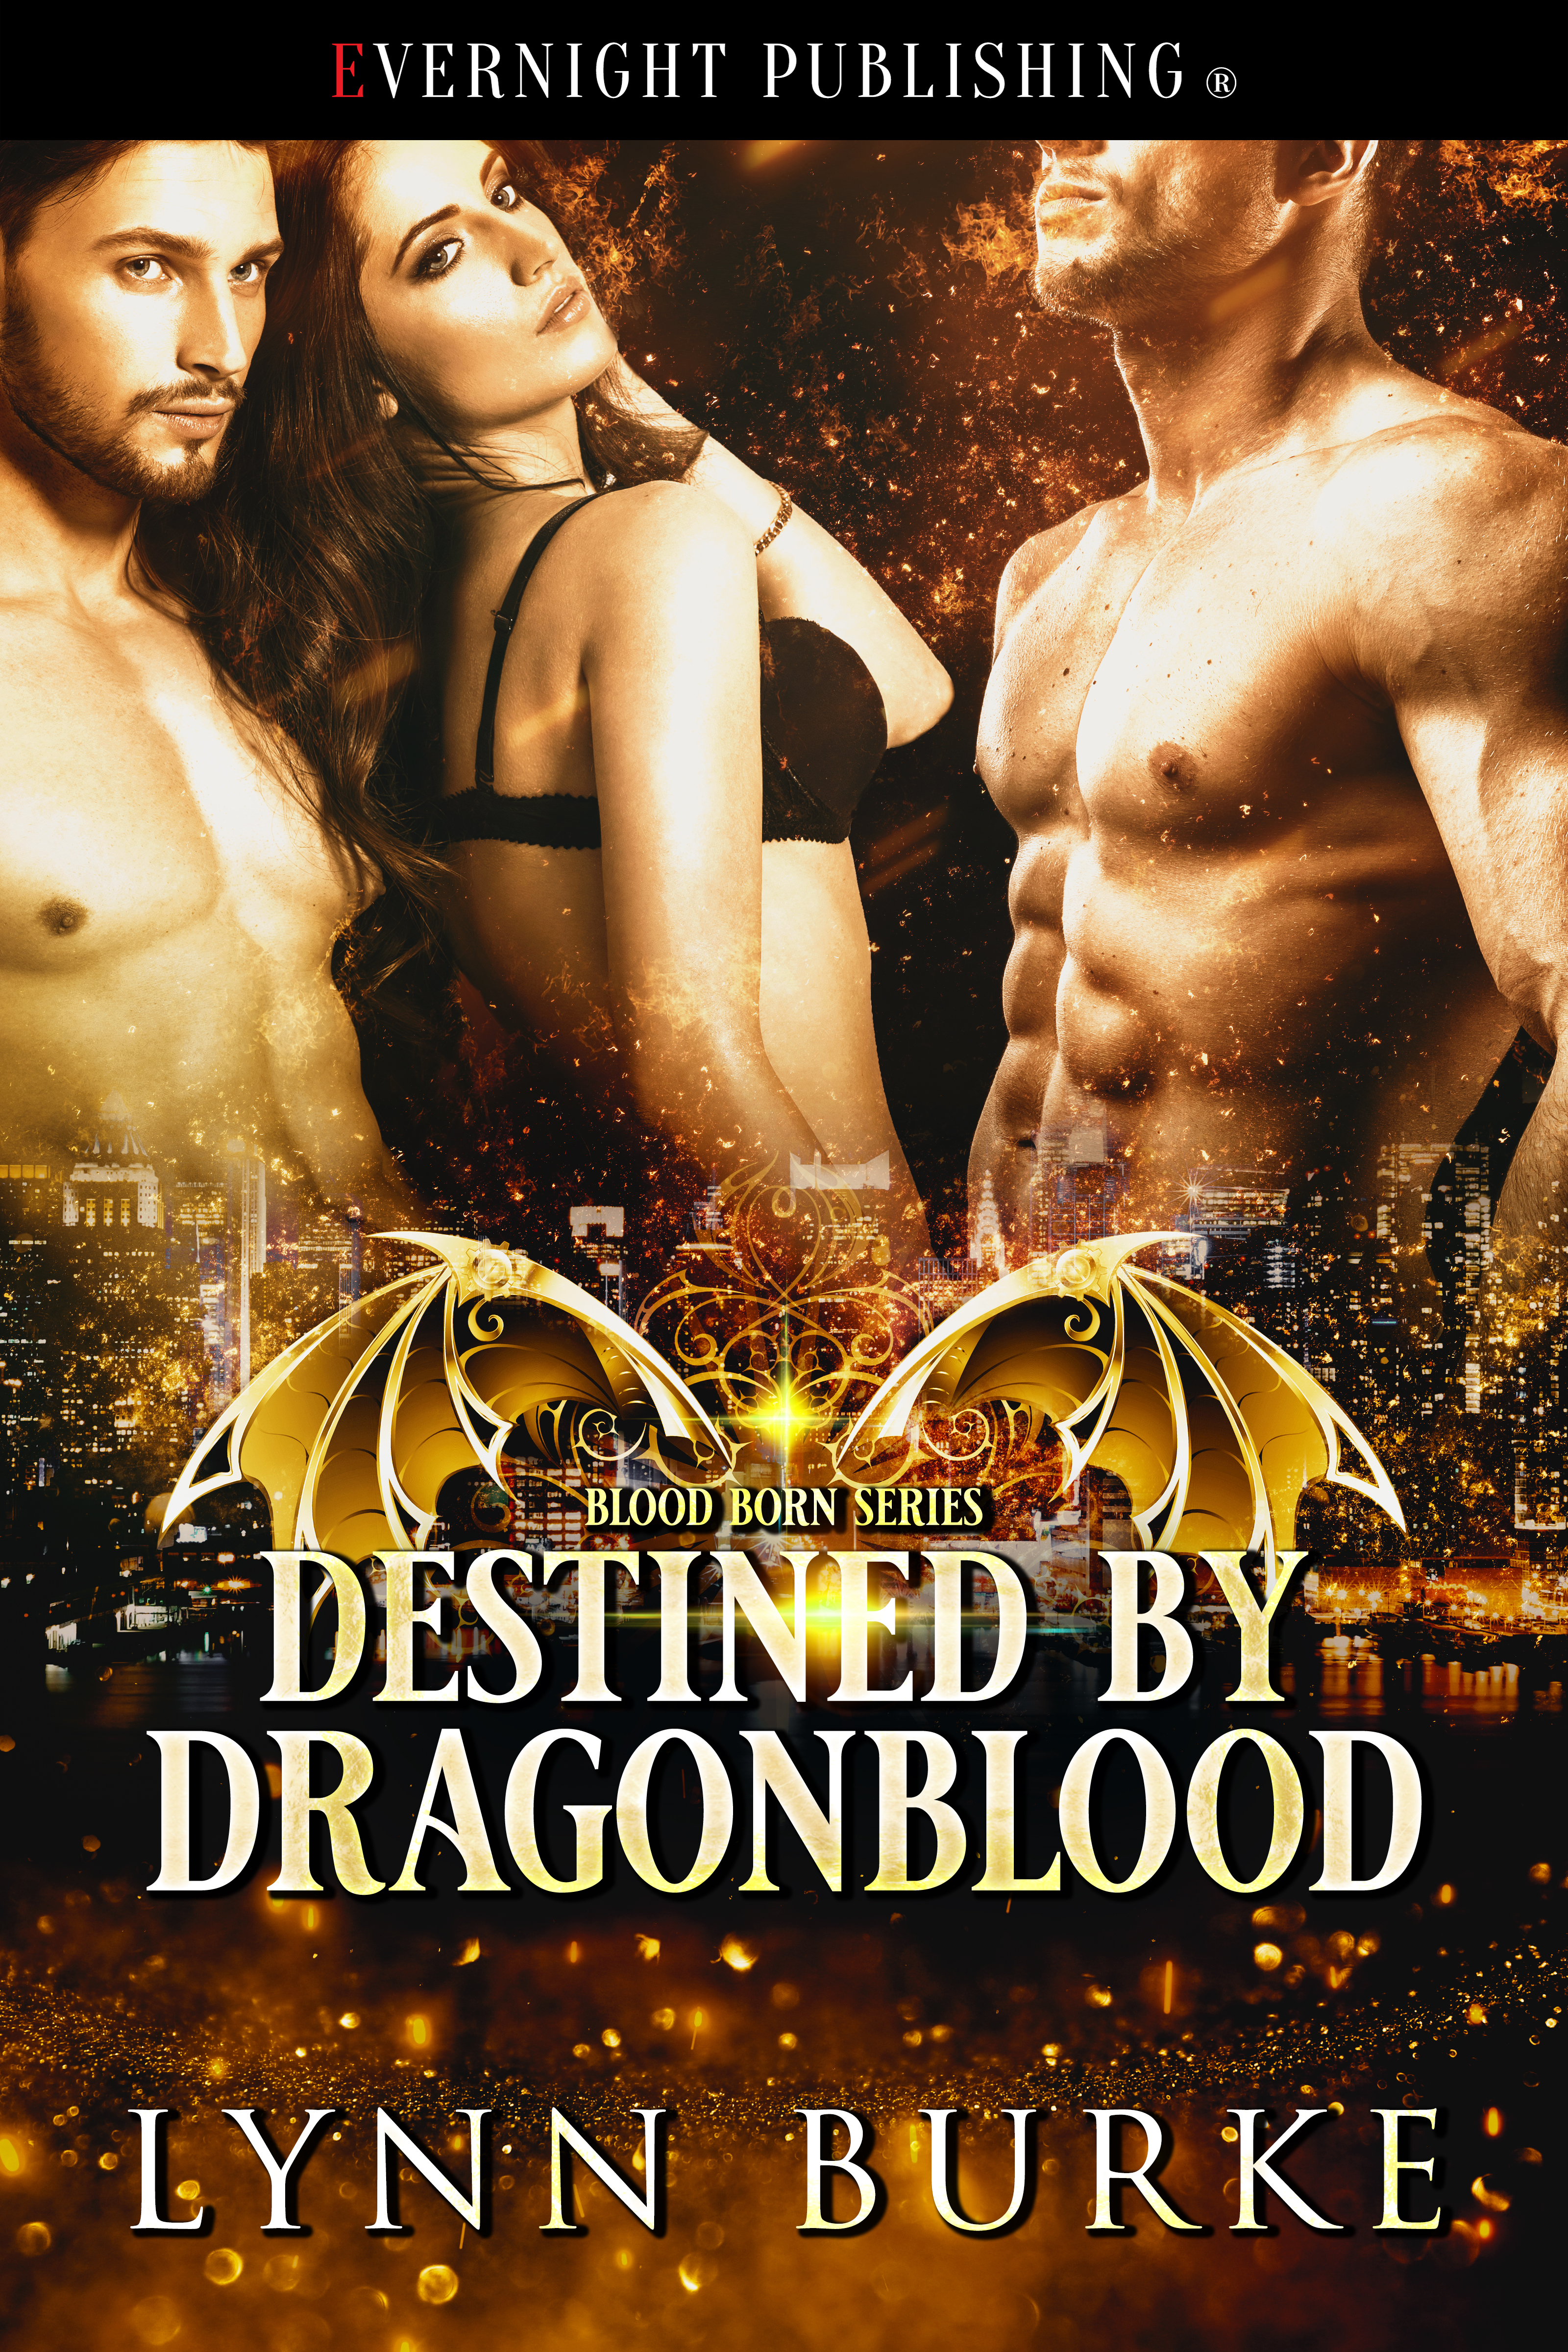 Destined by Dragonblood-eBook-complete